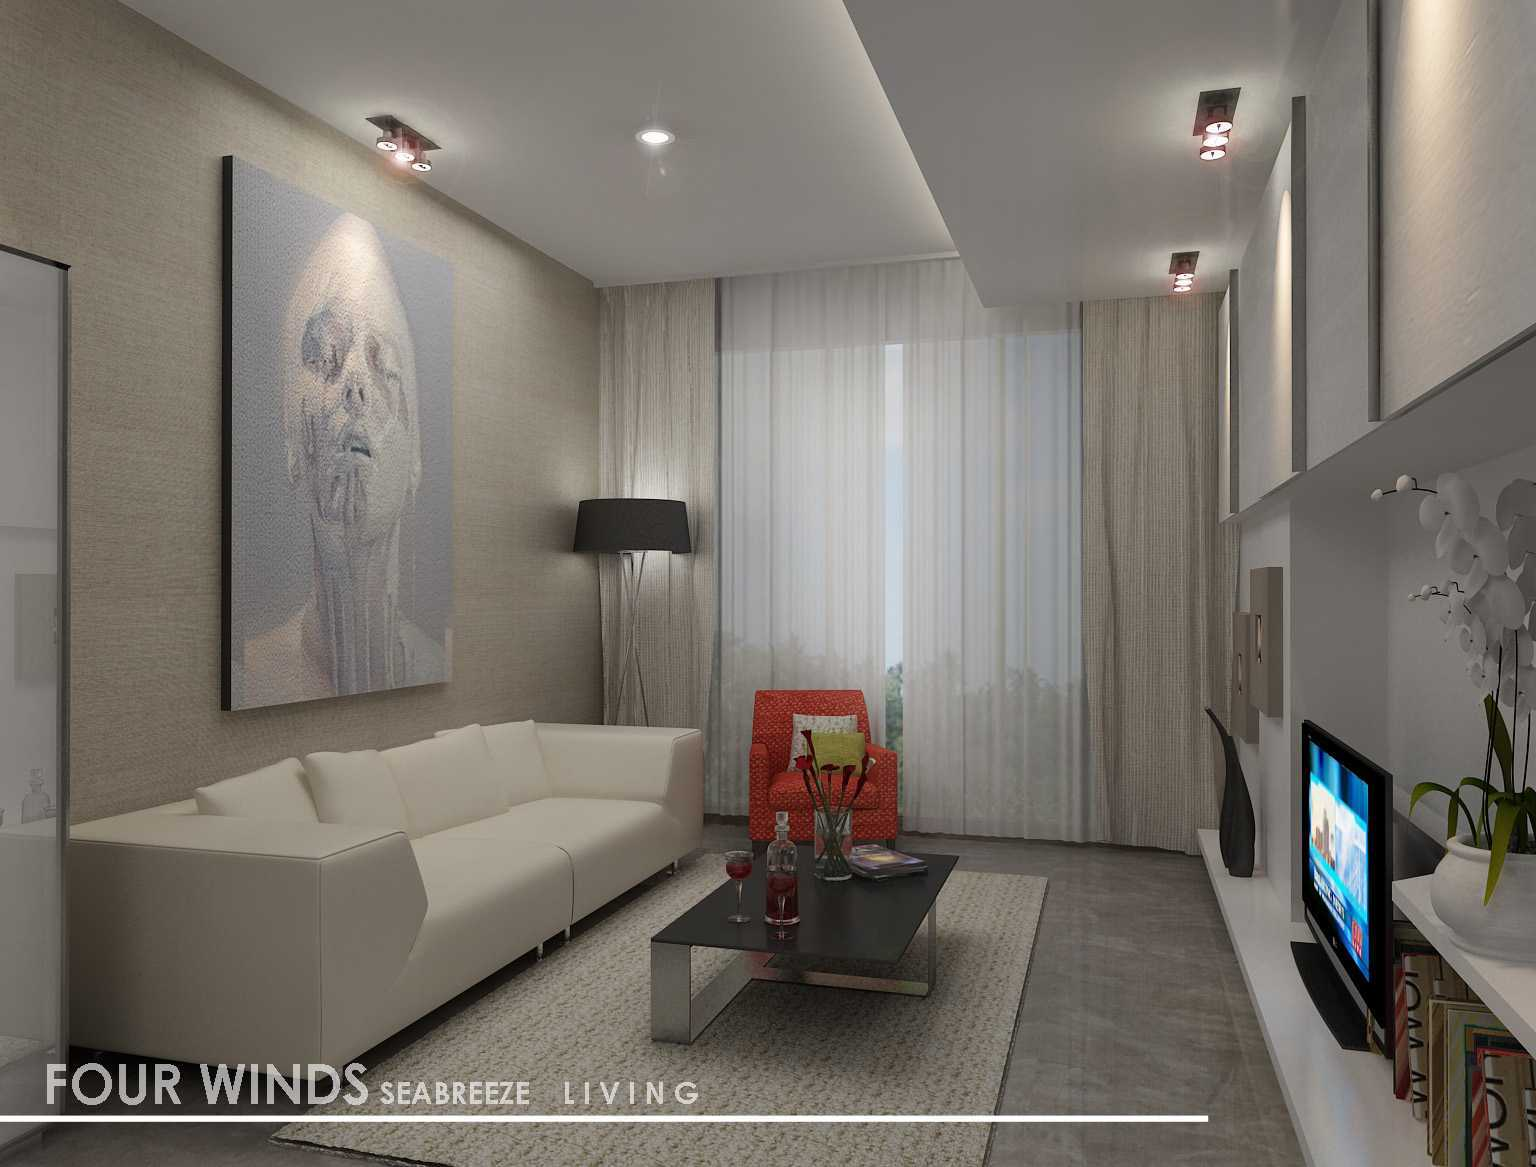 Rully Tanuwidjaja Interior Residential Four Winds Condominium Jl. Tentara Pelajar, Gelora, Tanahabang, Kota Jakarta Pusat, Daerah Khusus Ibukota Jakarta, Indonesia  Sea-Breeze Living   48340